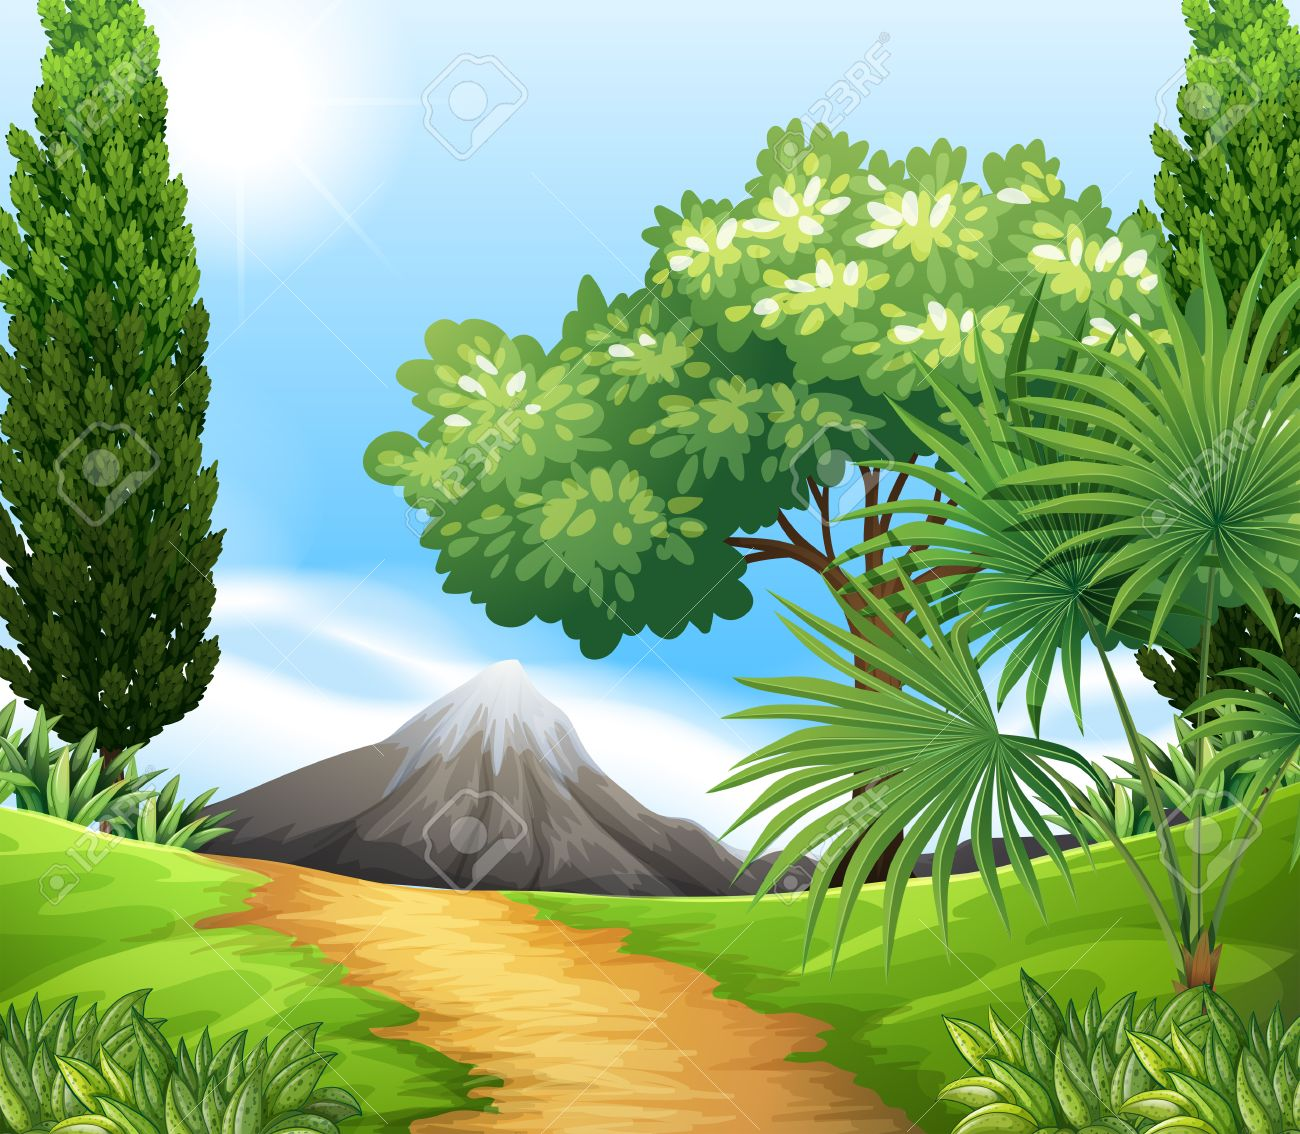 Scenery of nature with trees and mountains.